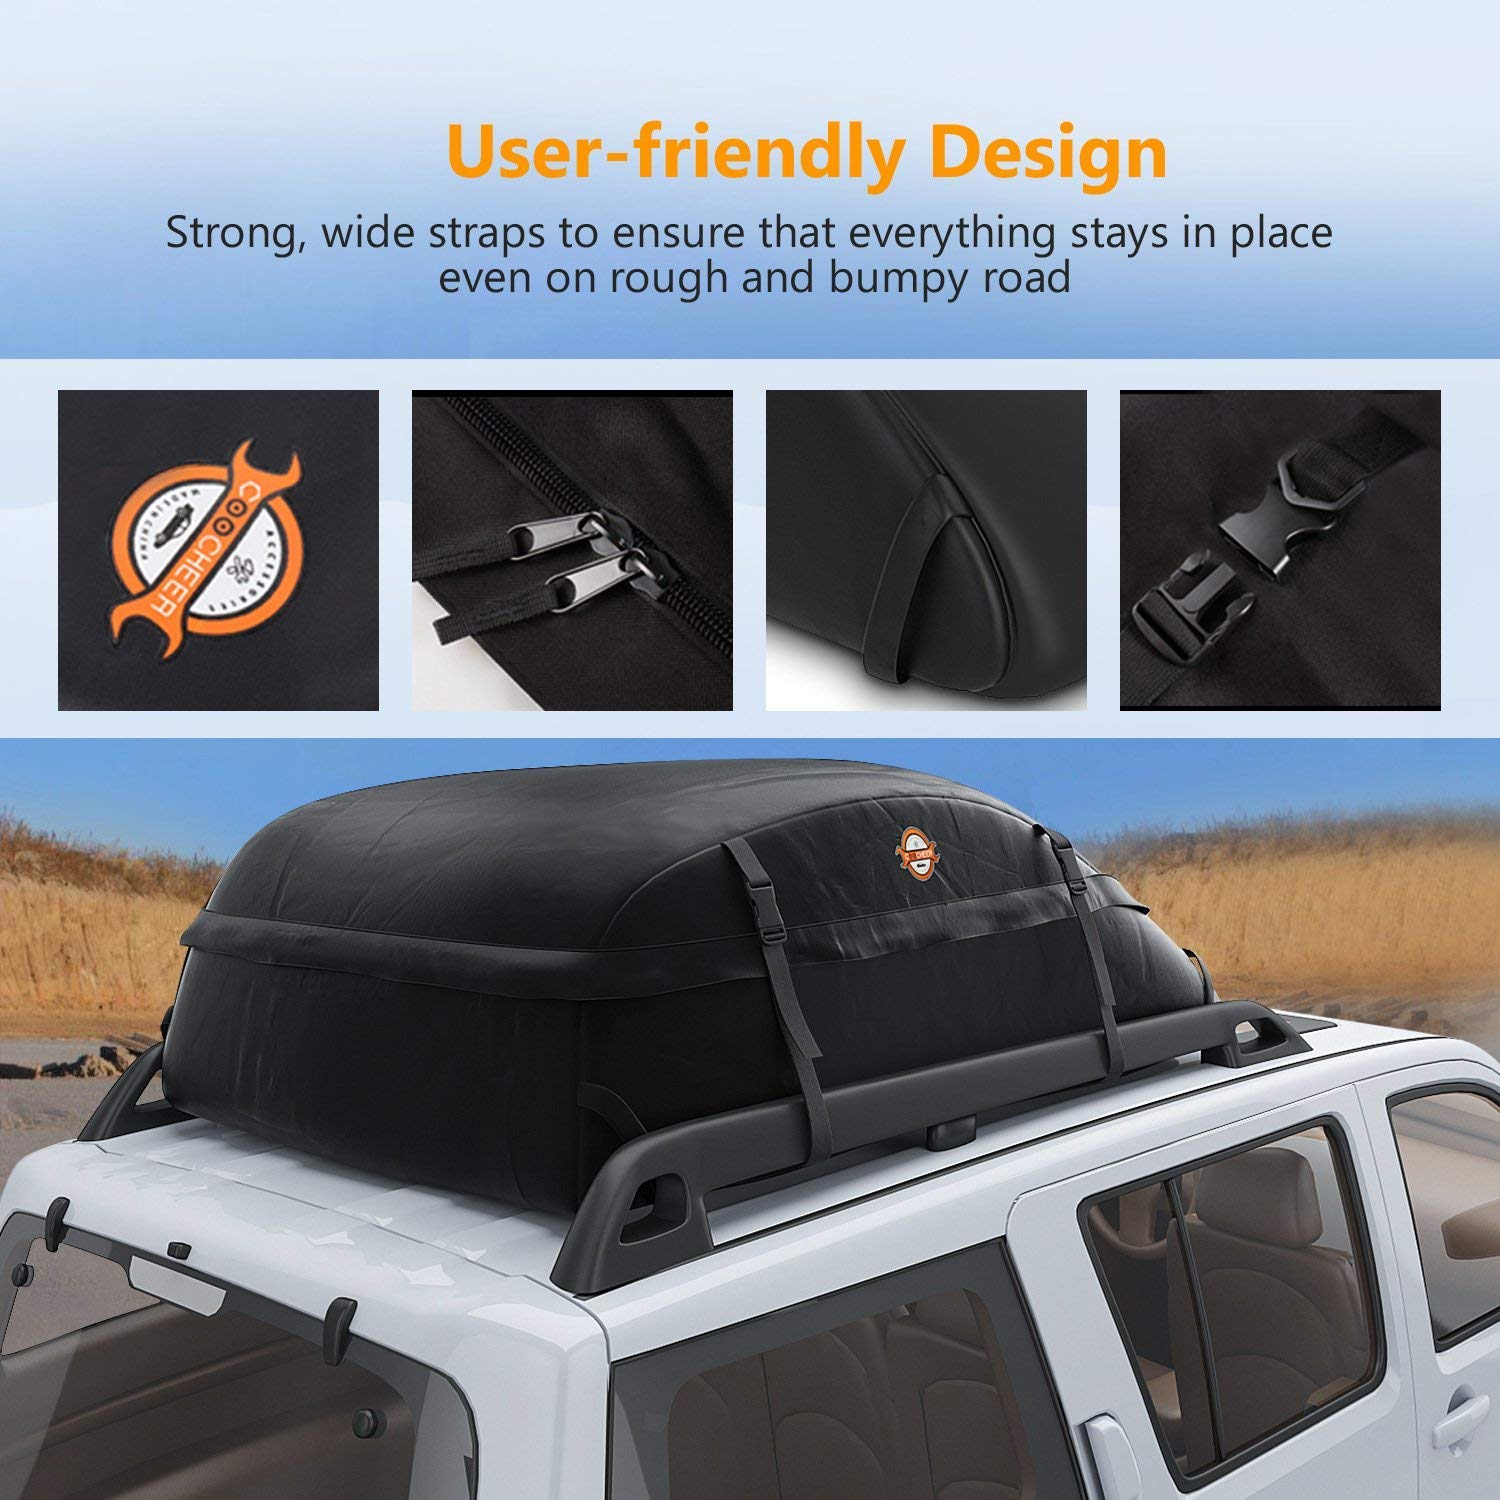 20 Cubic - Upgrade SUV Waterproof Roof Top Cargo Bag,Thickened Car Roof Carrier Universal Soft Rooftop Bag Luggage Cargo Carriers for Car,Vans